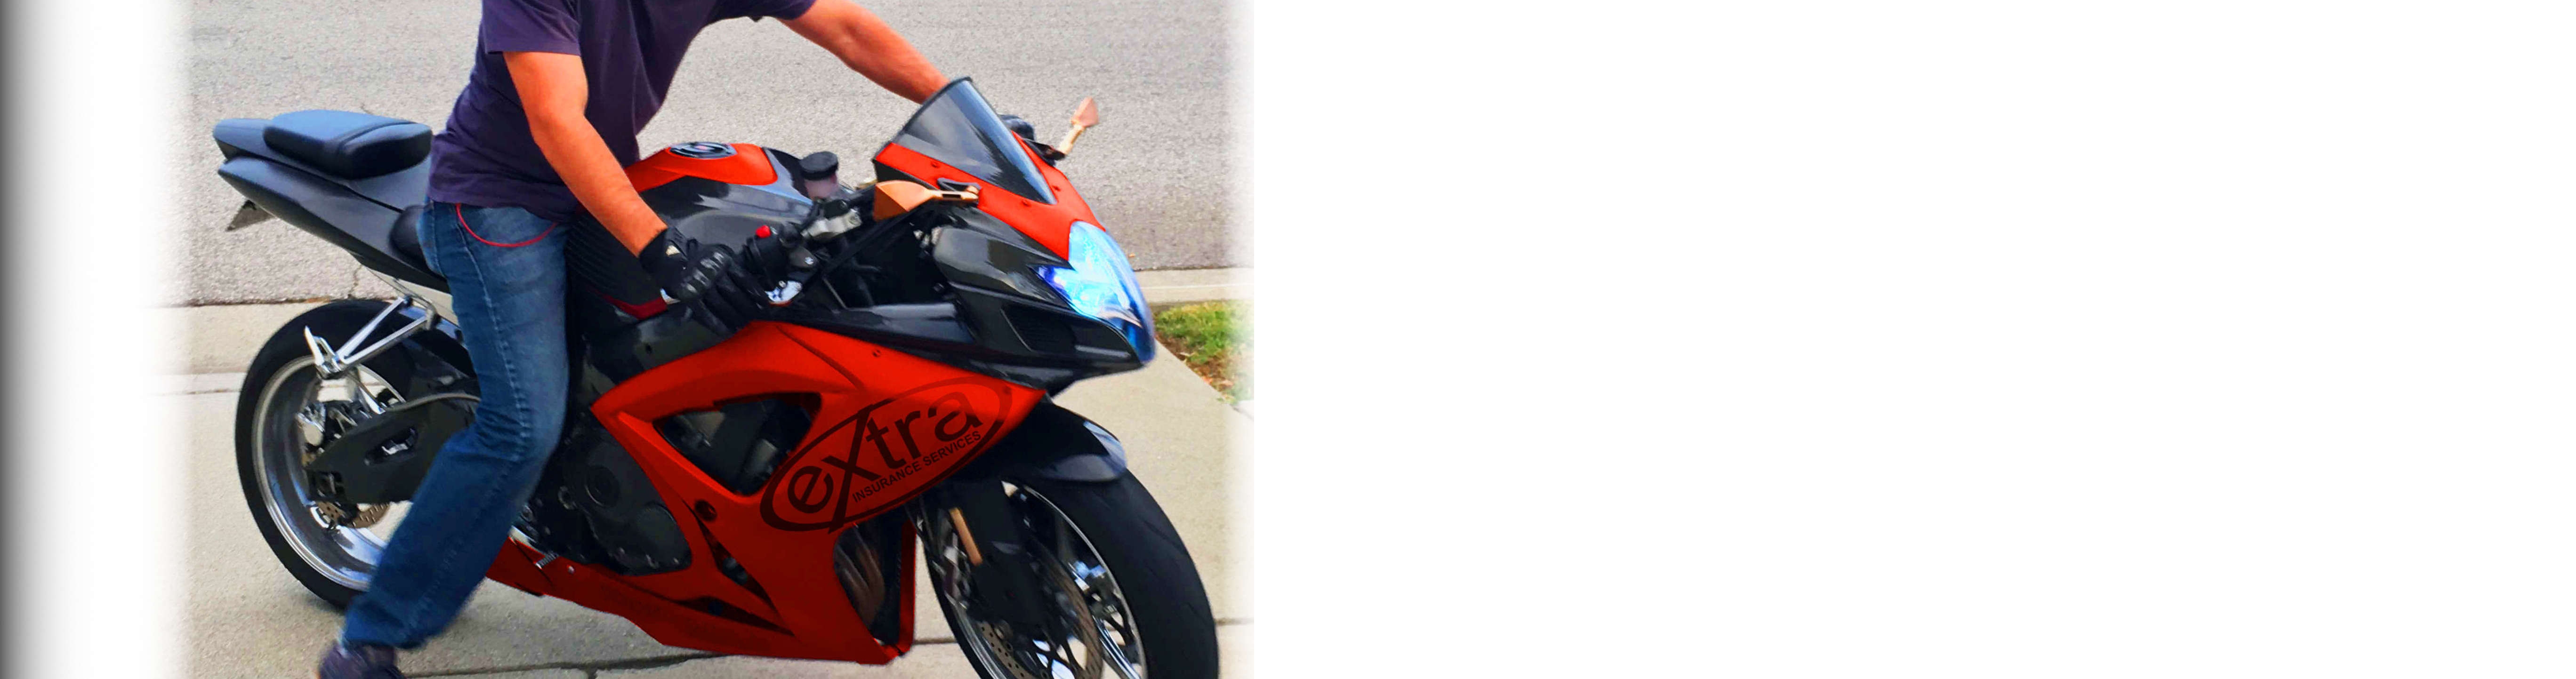 extra-motorcycle-insurance-services-banner